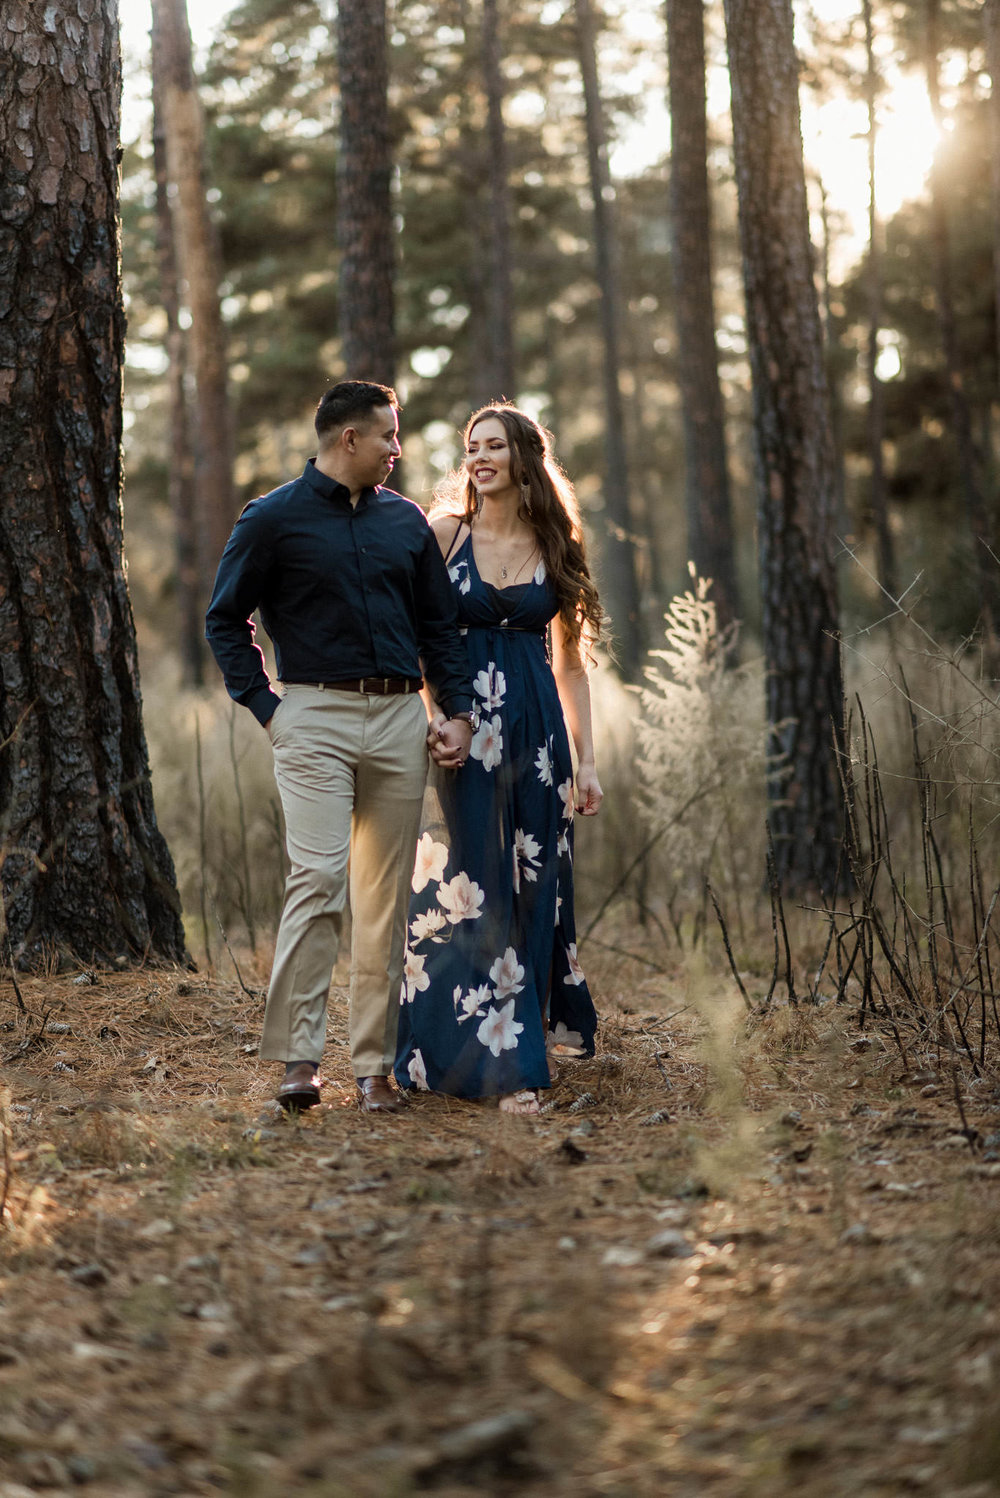 woodlands-houston-forest-enchanted-romantic-engagement-photographer